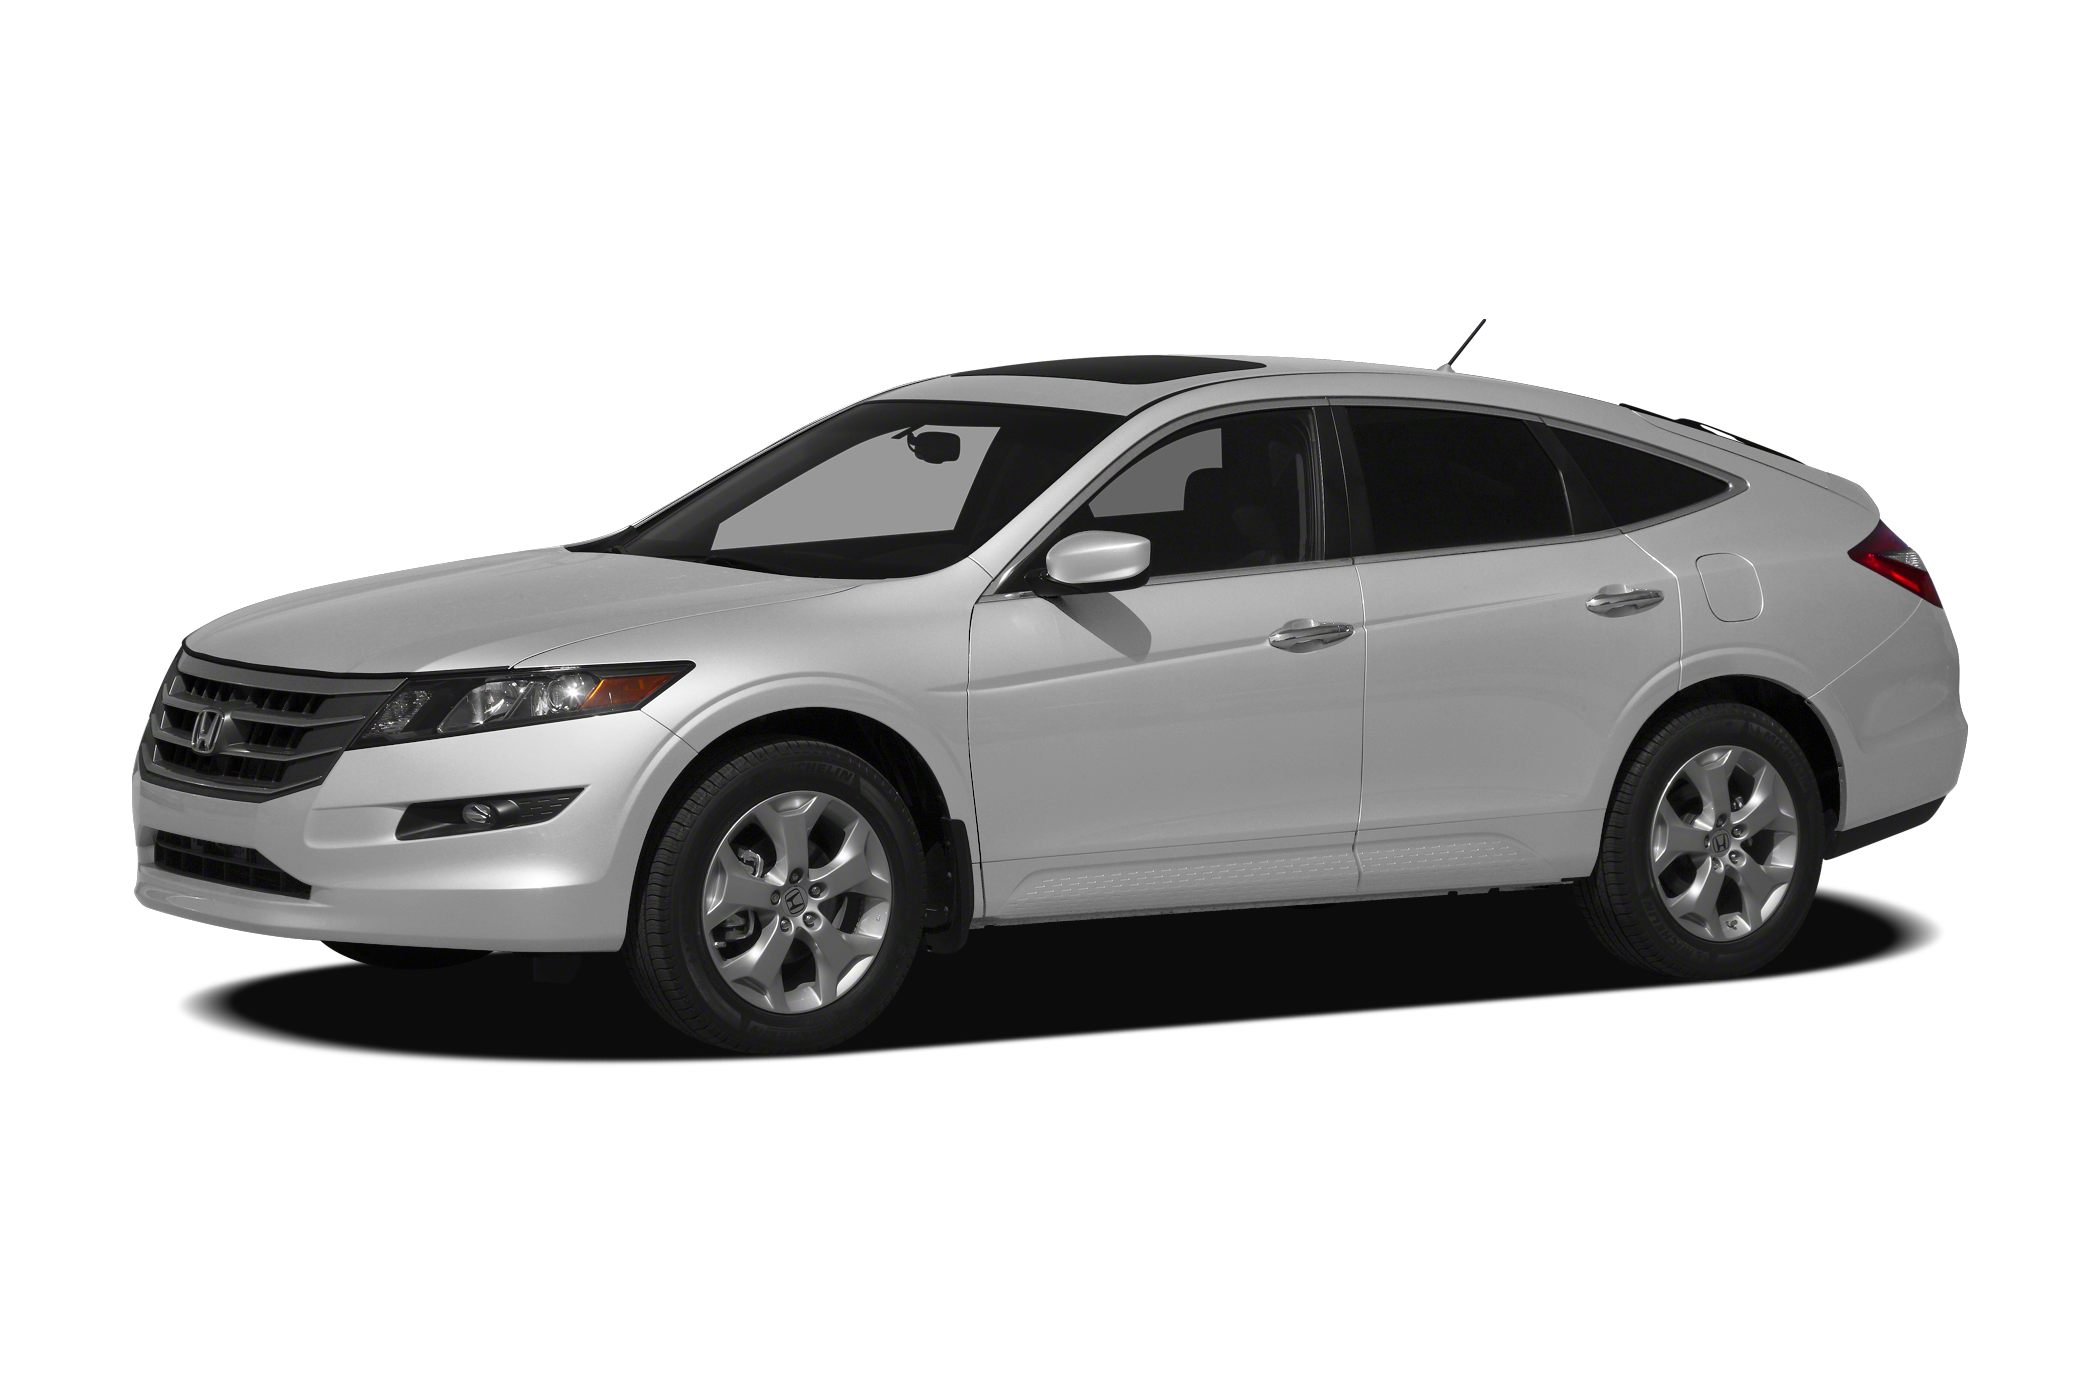 Honda Crosstour: photos, specifications, reviews of owners 15